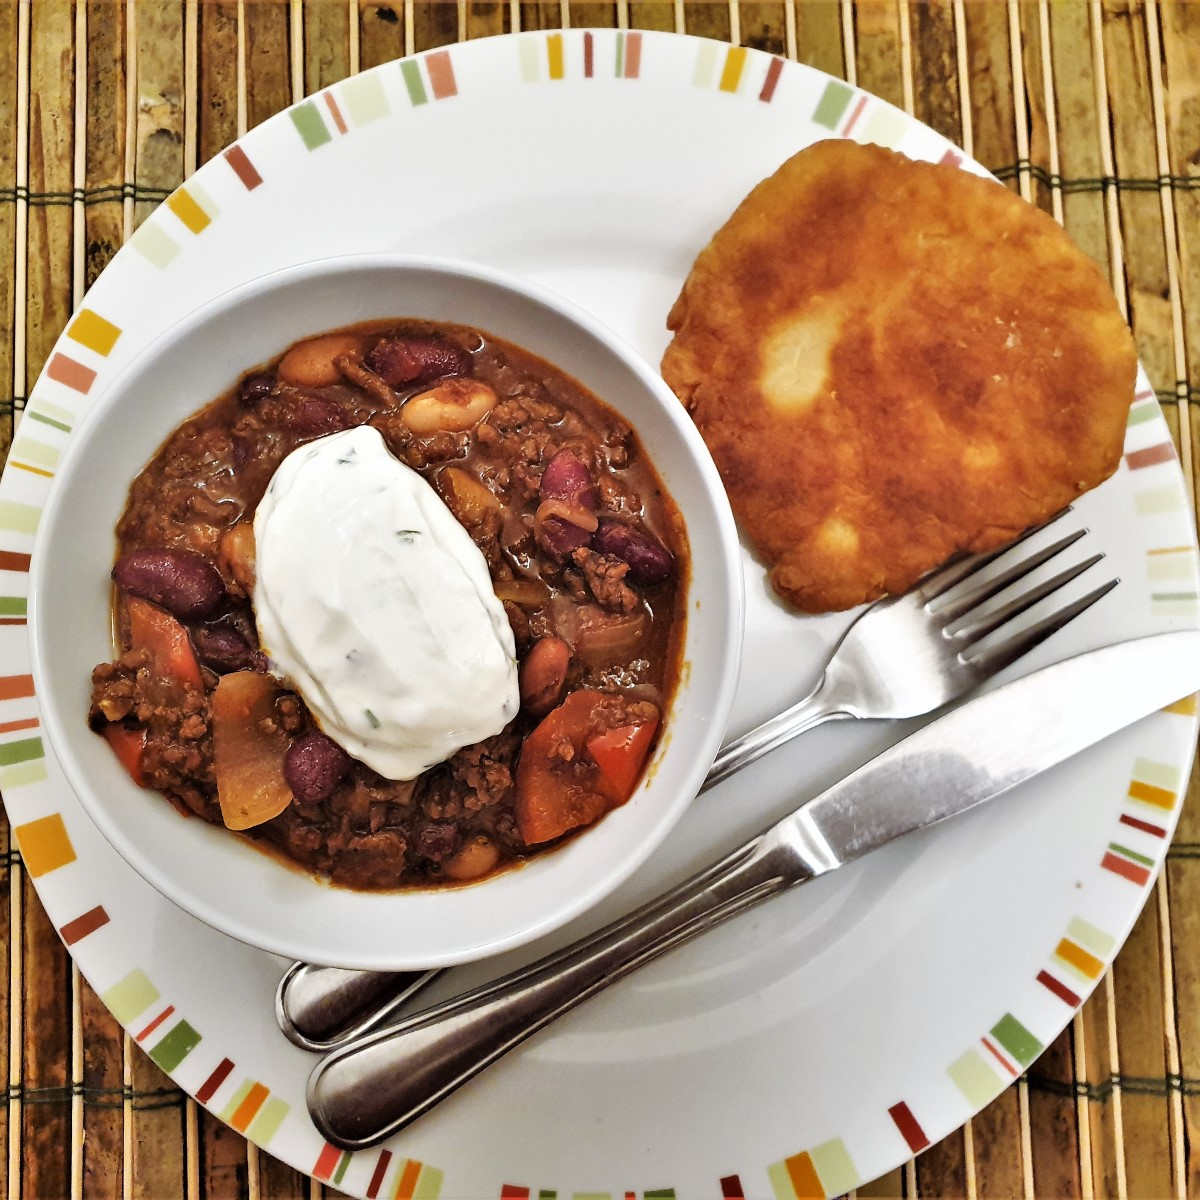 A bowl of chillli con carne topped with sour cream, alongside a homemade vetkoek (or fried dough ball).